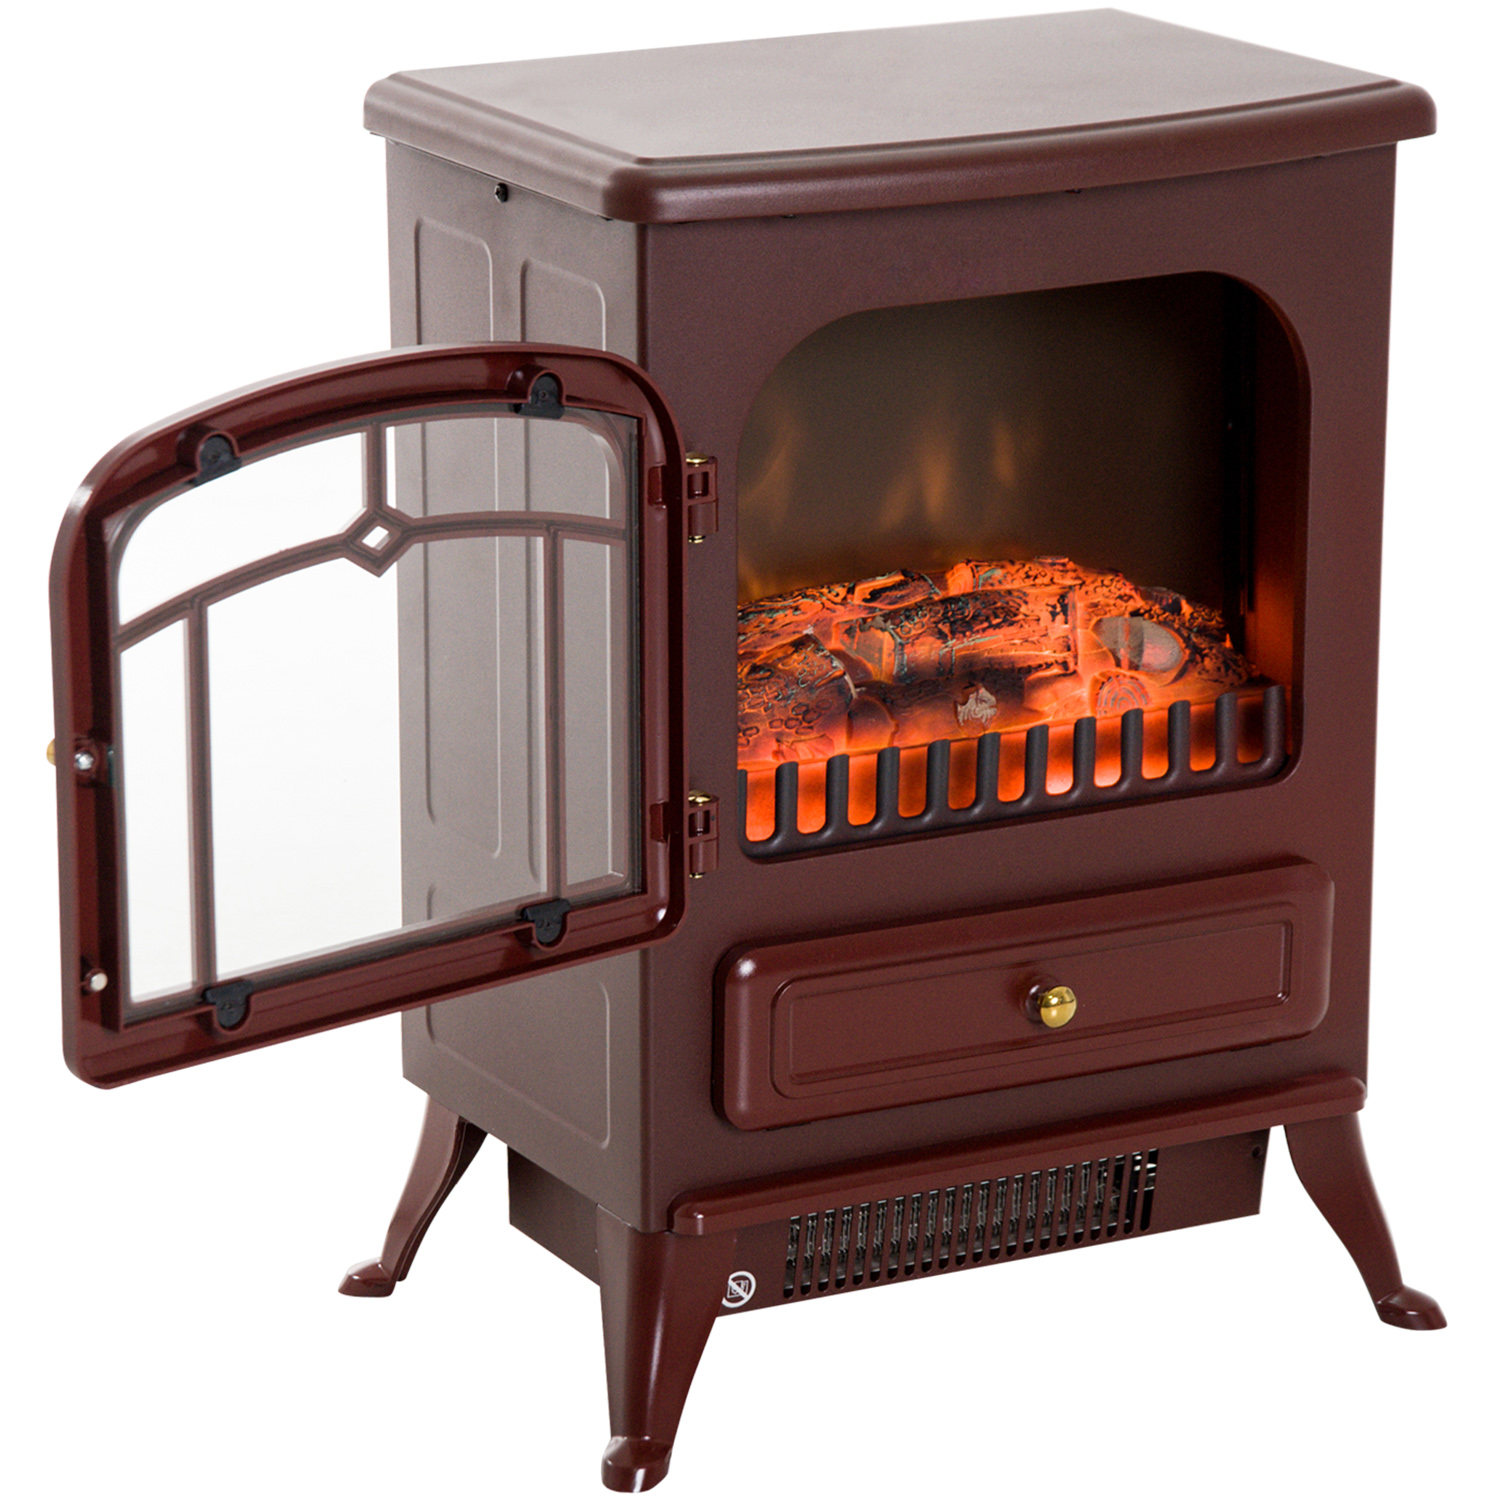 HOMCOM-750-1500W-Portable-Electric-Fireplace-Stove-Heater-Adjustable-LED-Flames thumbnail 14